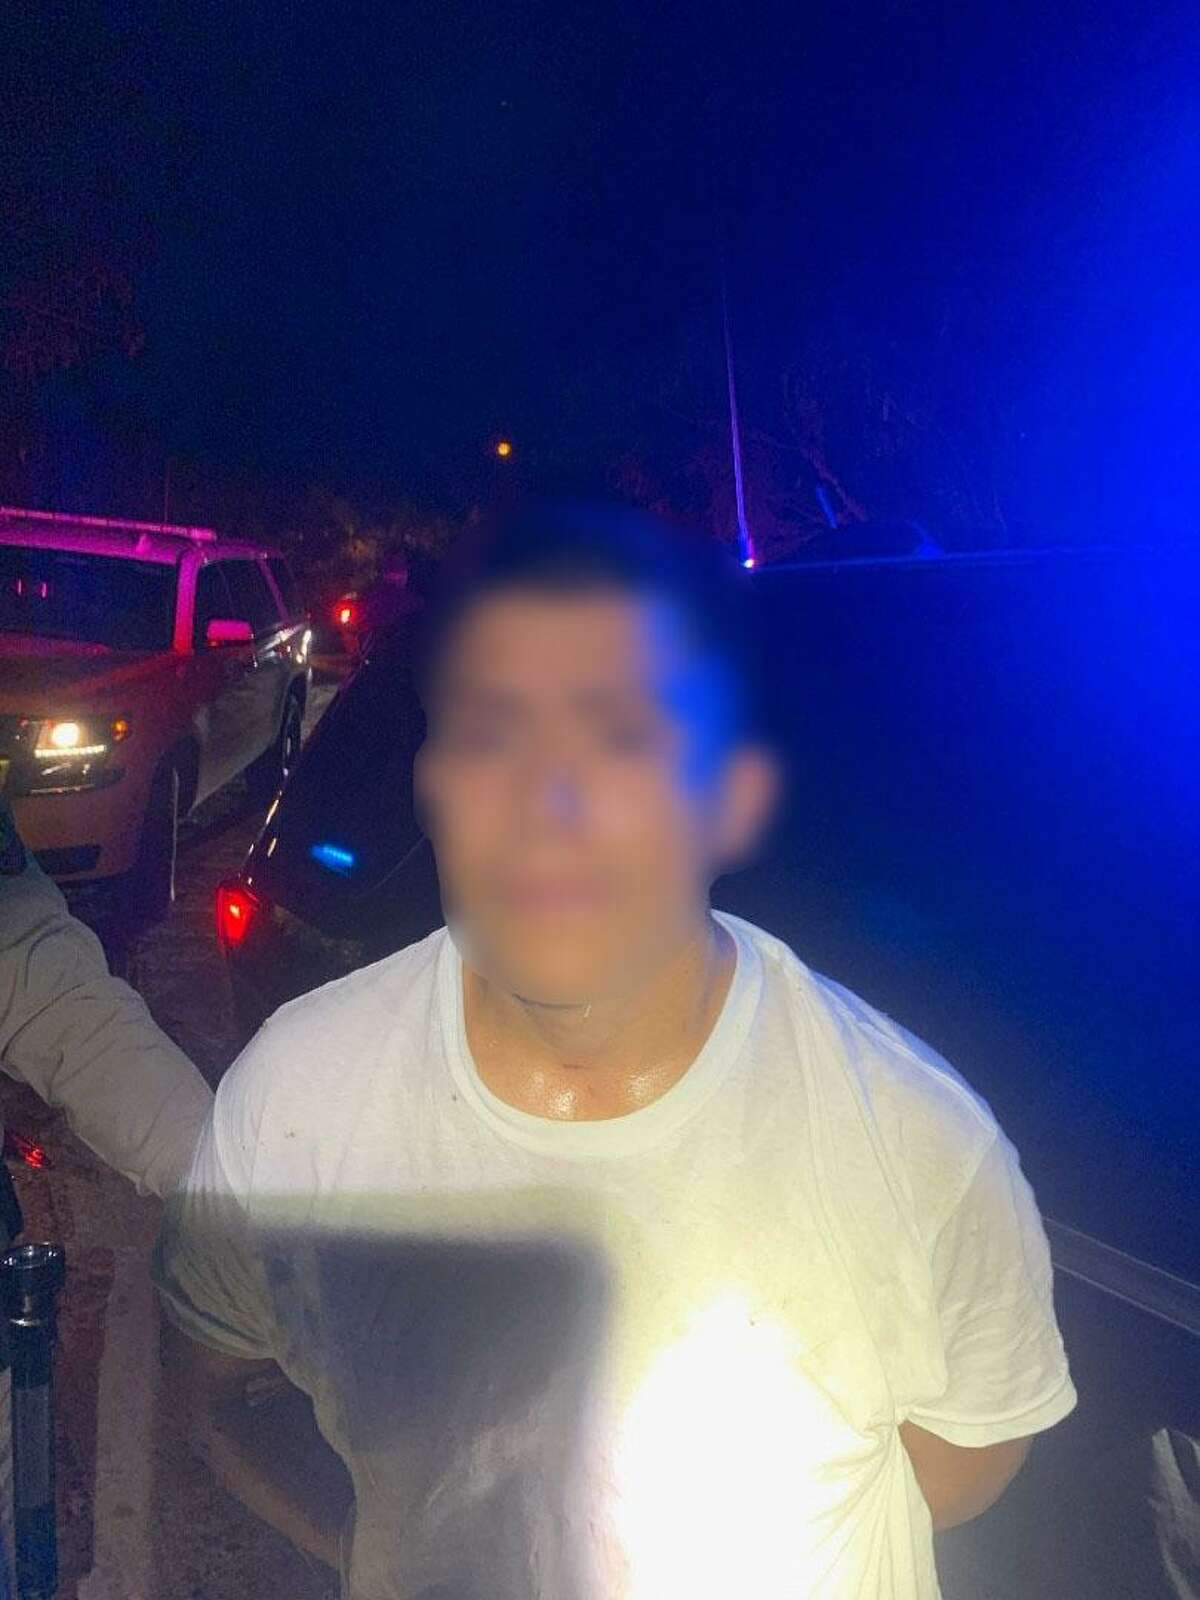 The Texas Department of Public Safety said David Gonzalez, 20, led them on a chase in south Laredo.